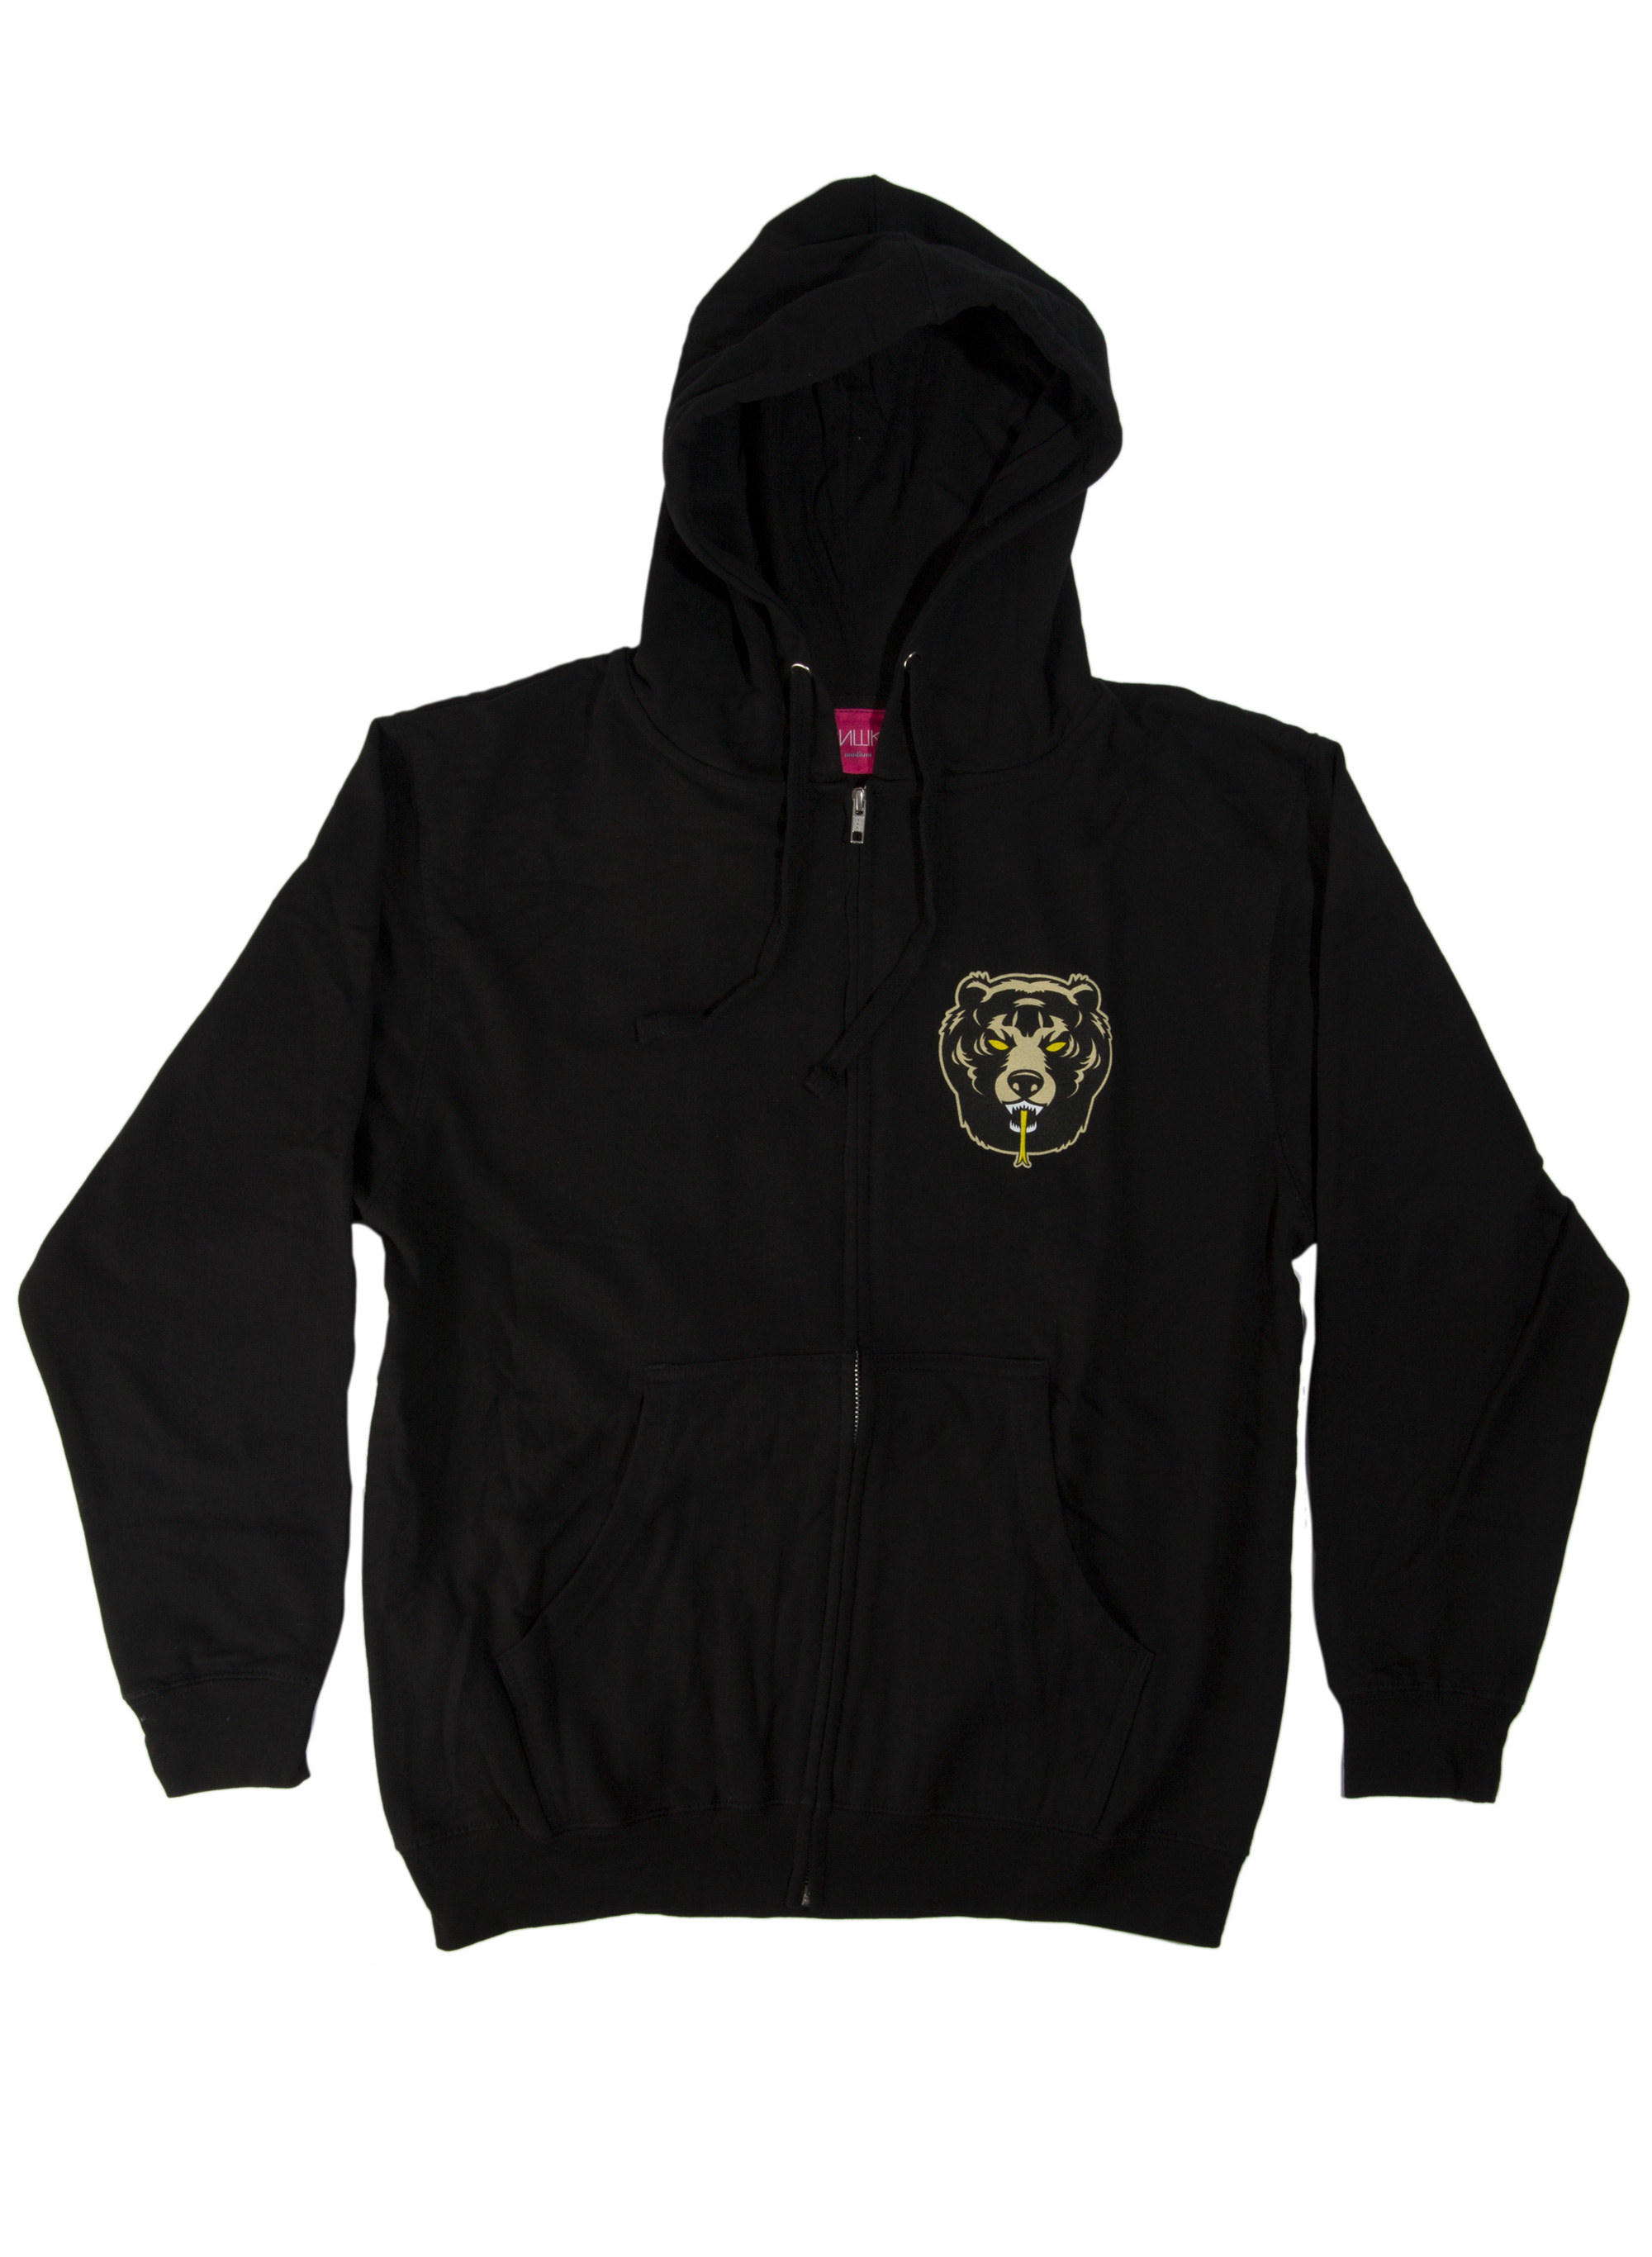 Death Adder Zip Up